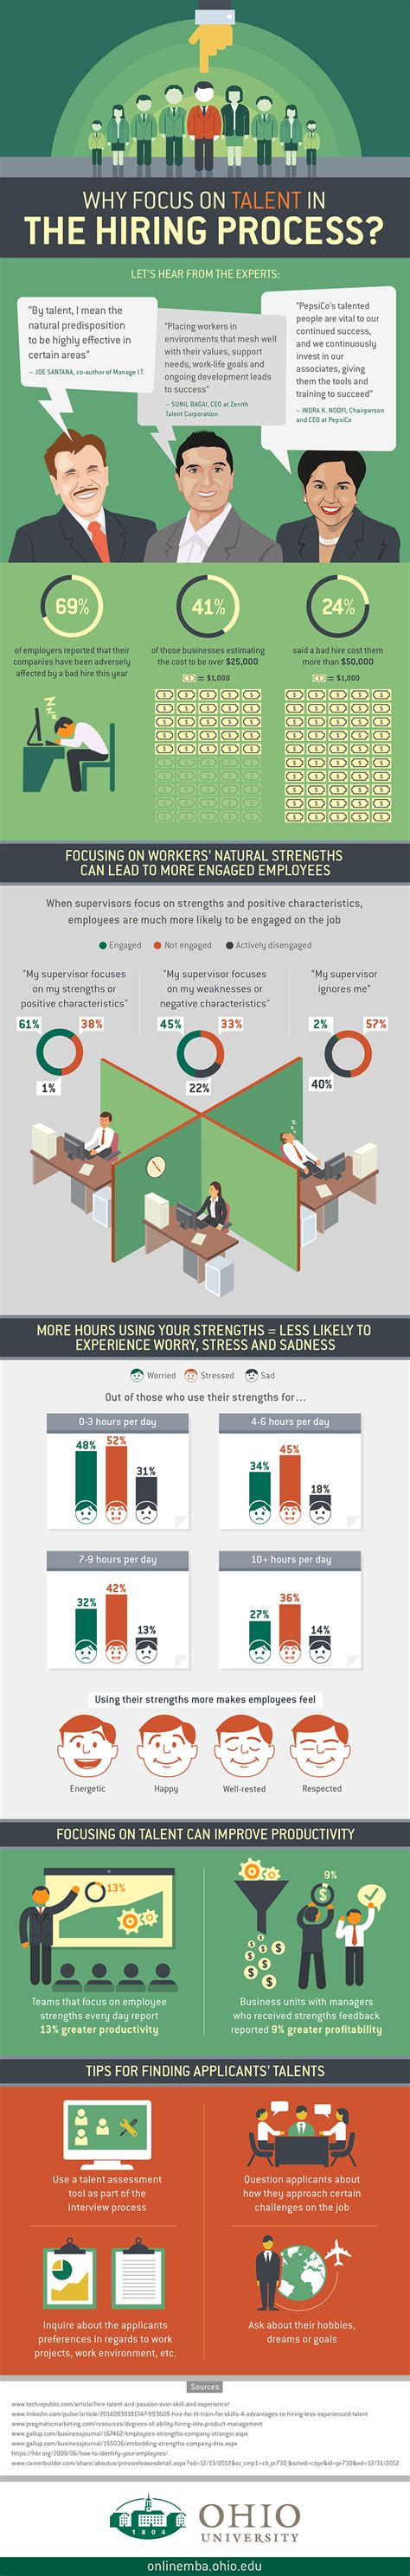 Which Mba Focus Is Right For Me by Focusing On Talent In The Hiring Process Infographic